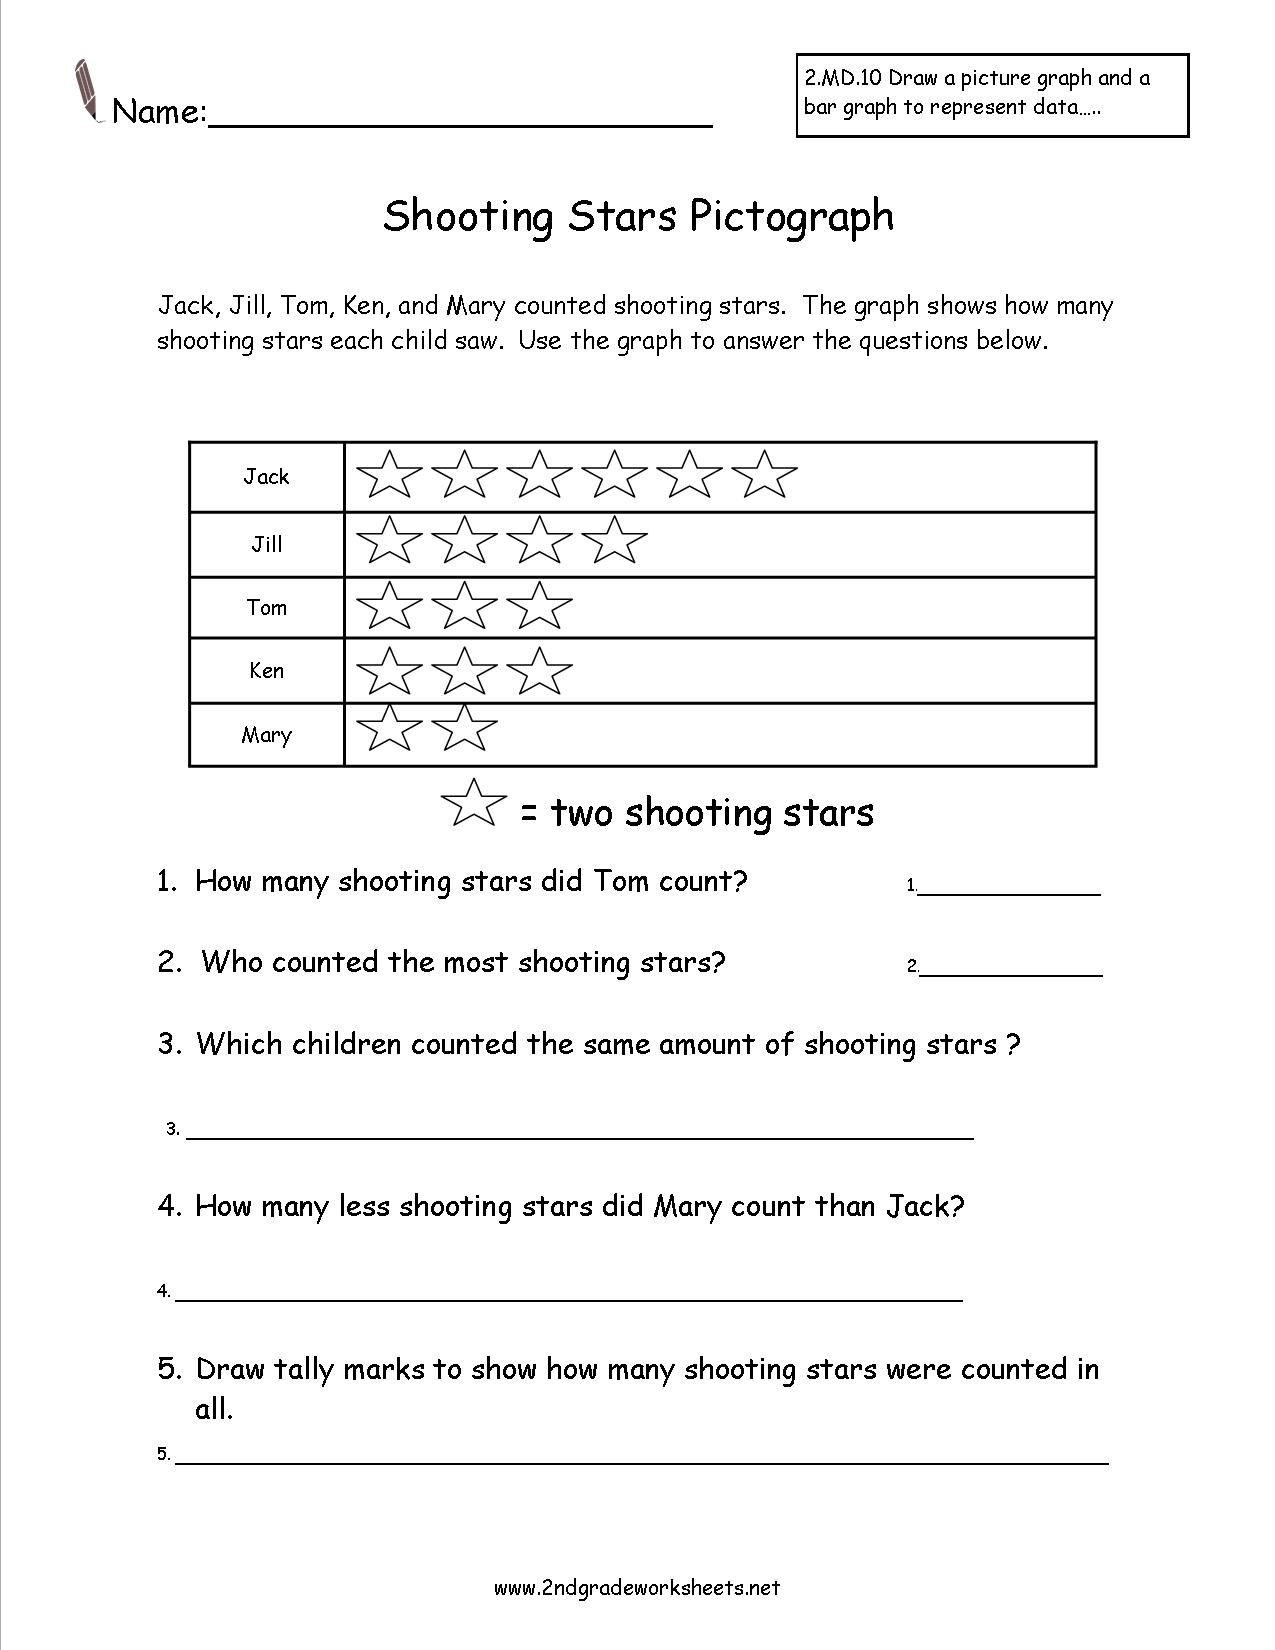 Bar Graph Worksheets Middle School Shooting Stars Pictograph Worksheet